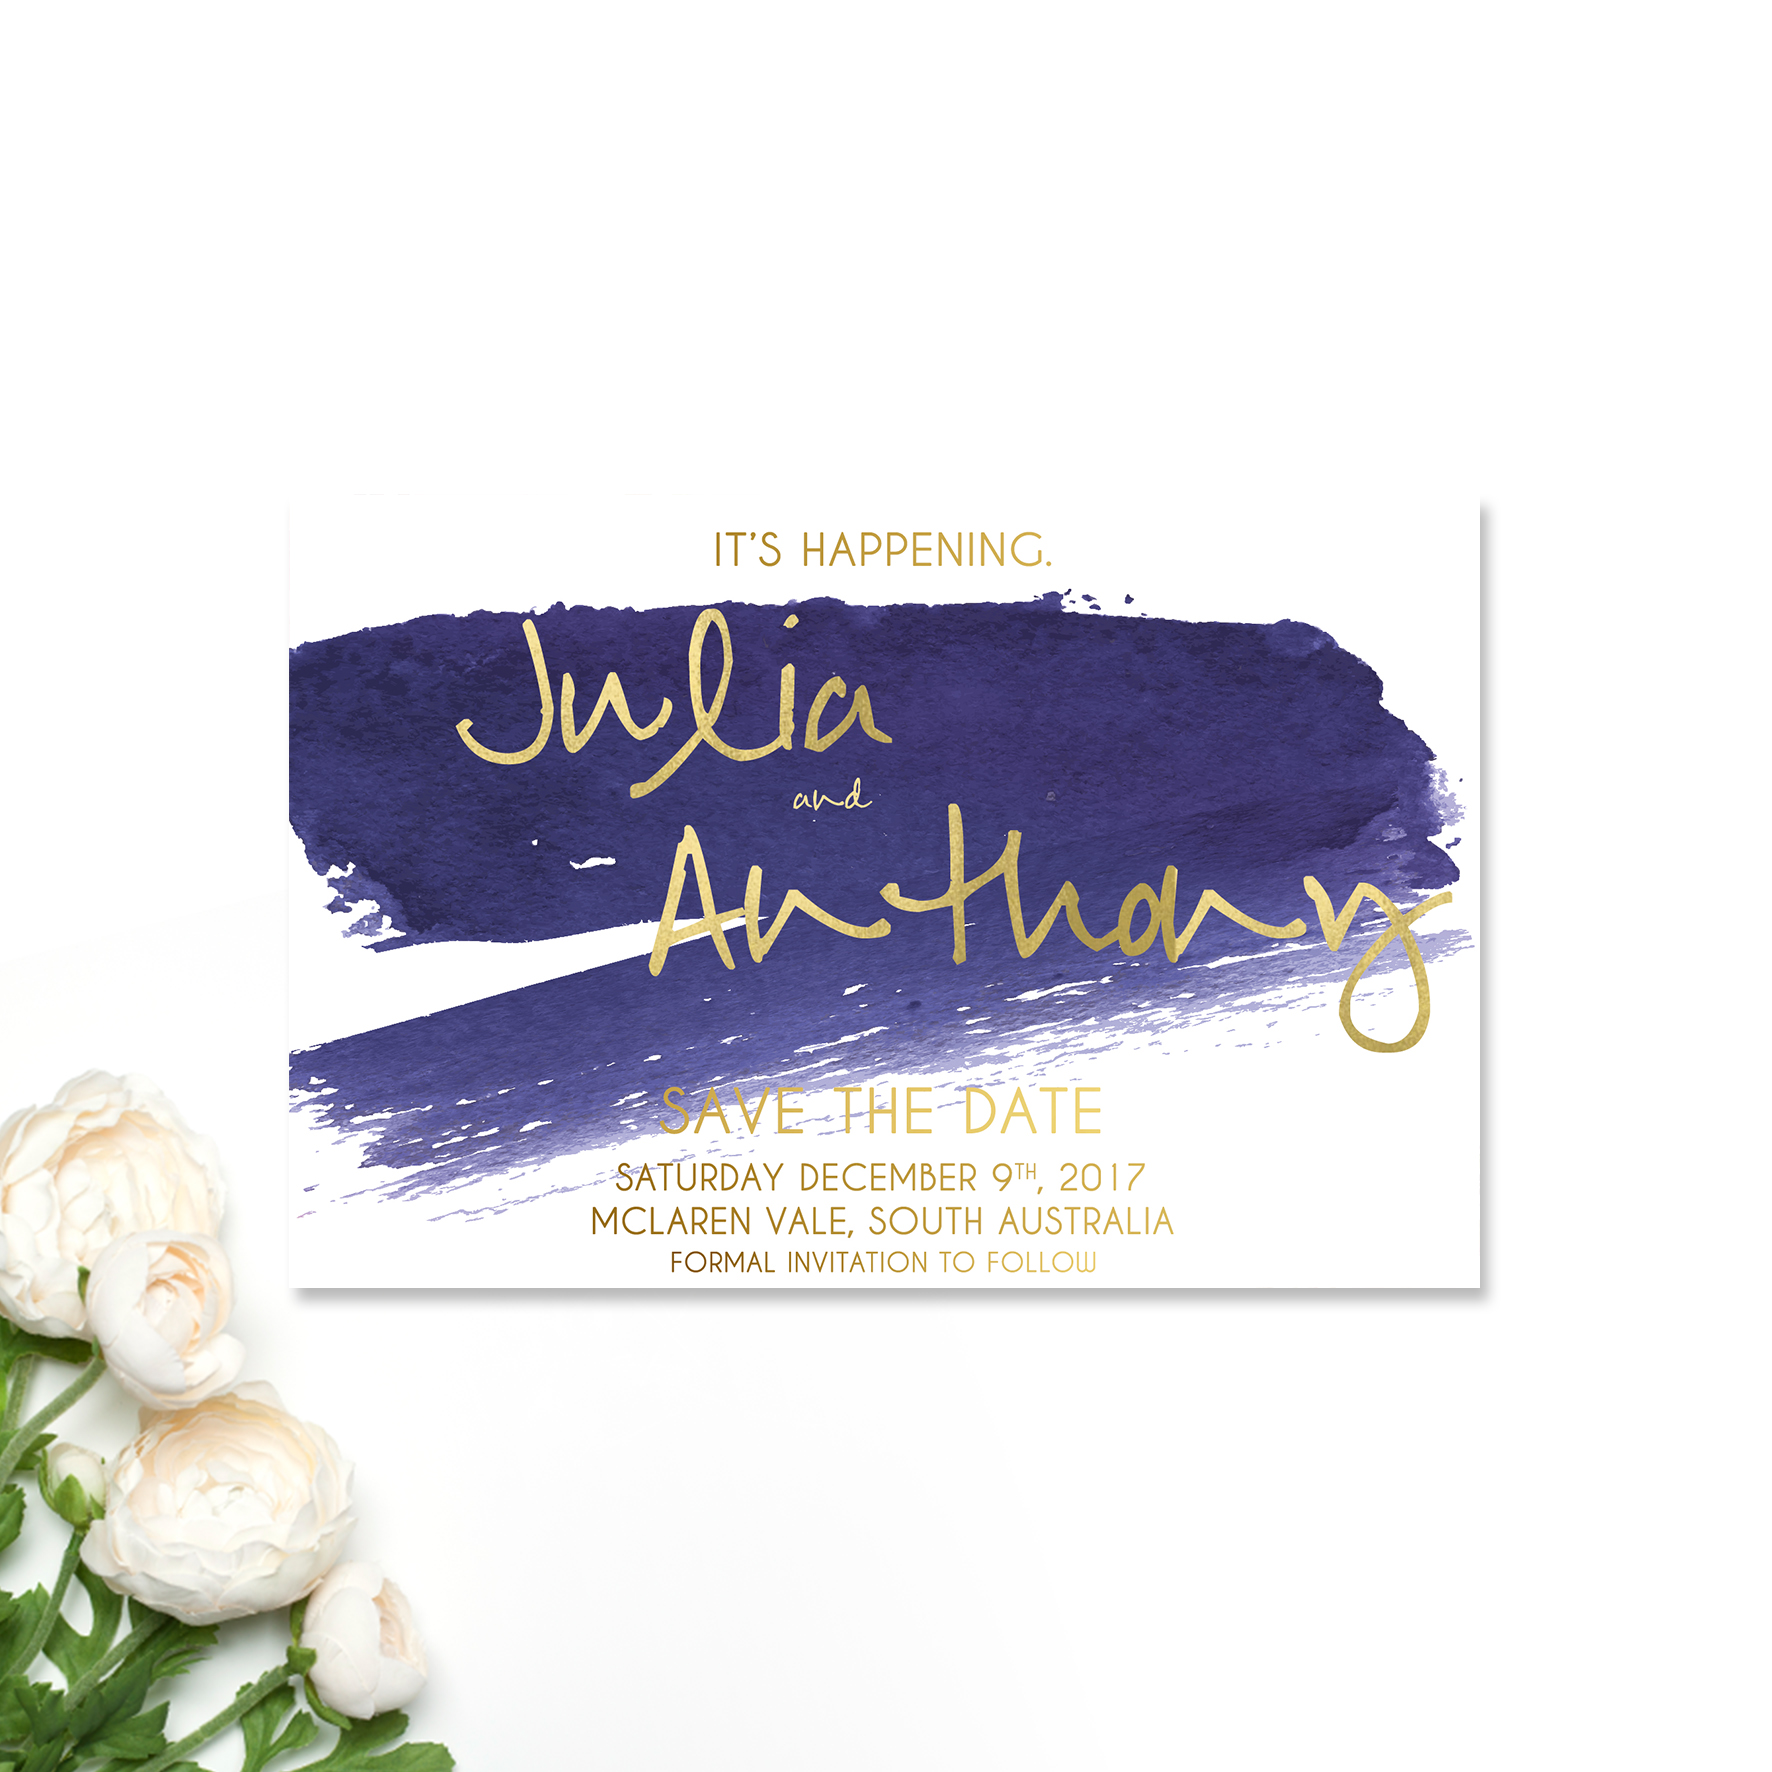 Julia + Anthony Save the Date Card